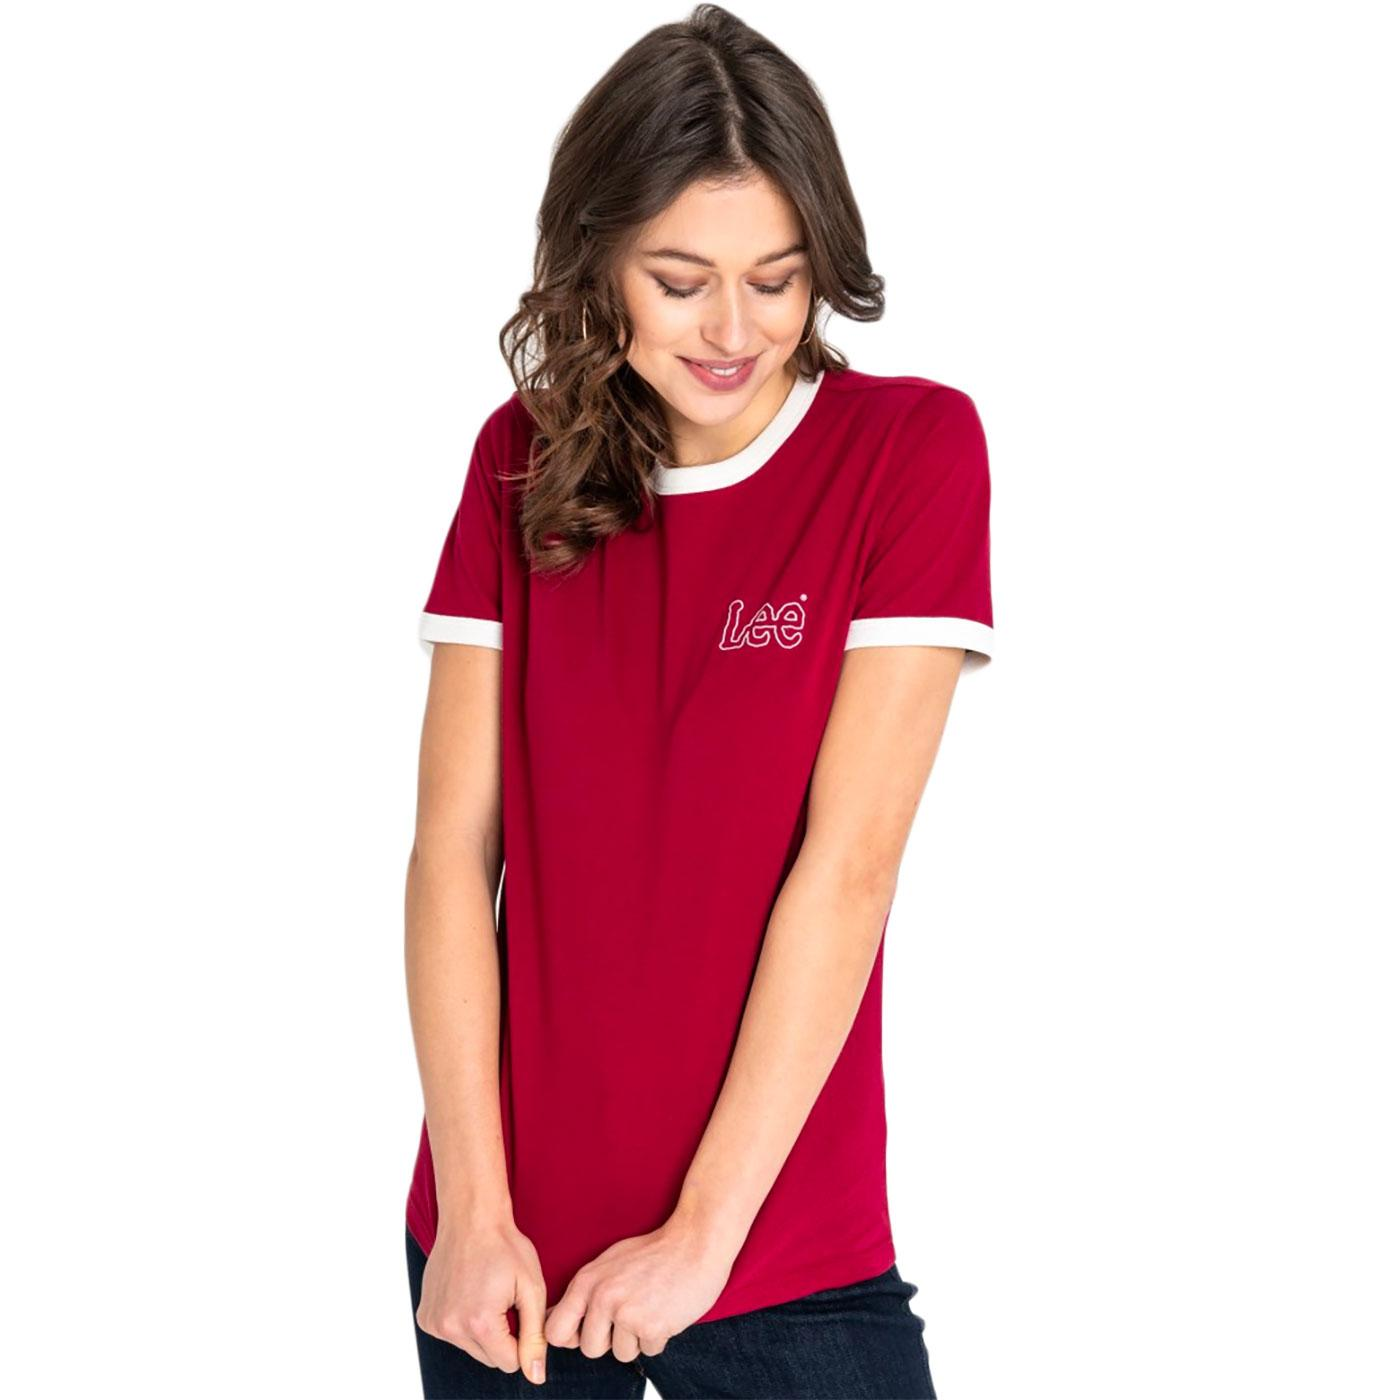 LEE JEANS Women's Retro 70s Ringer Tee (Faded Red)